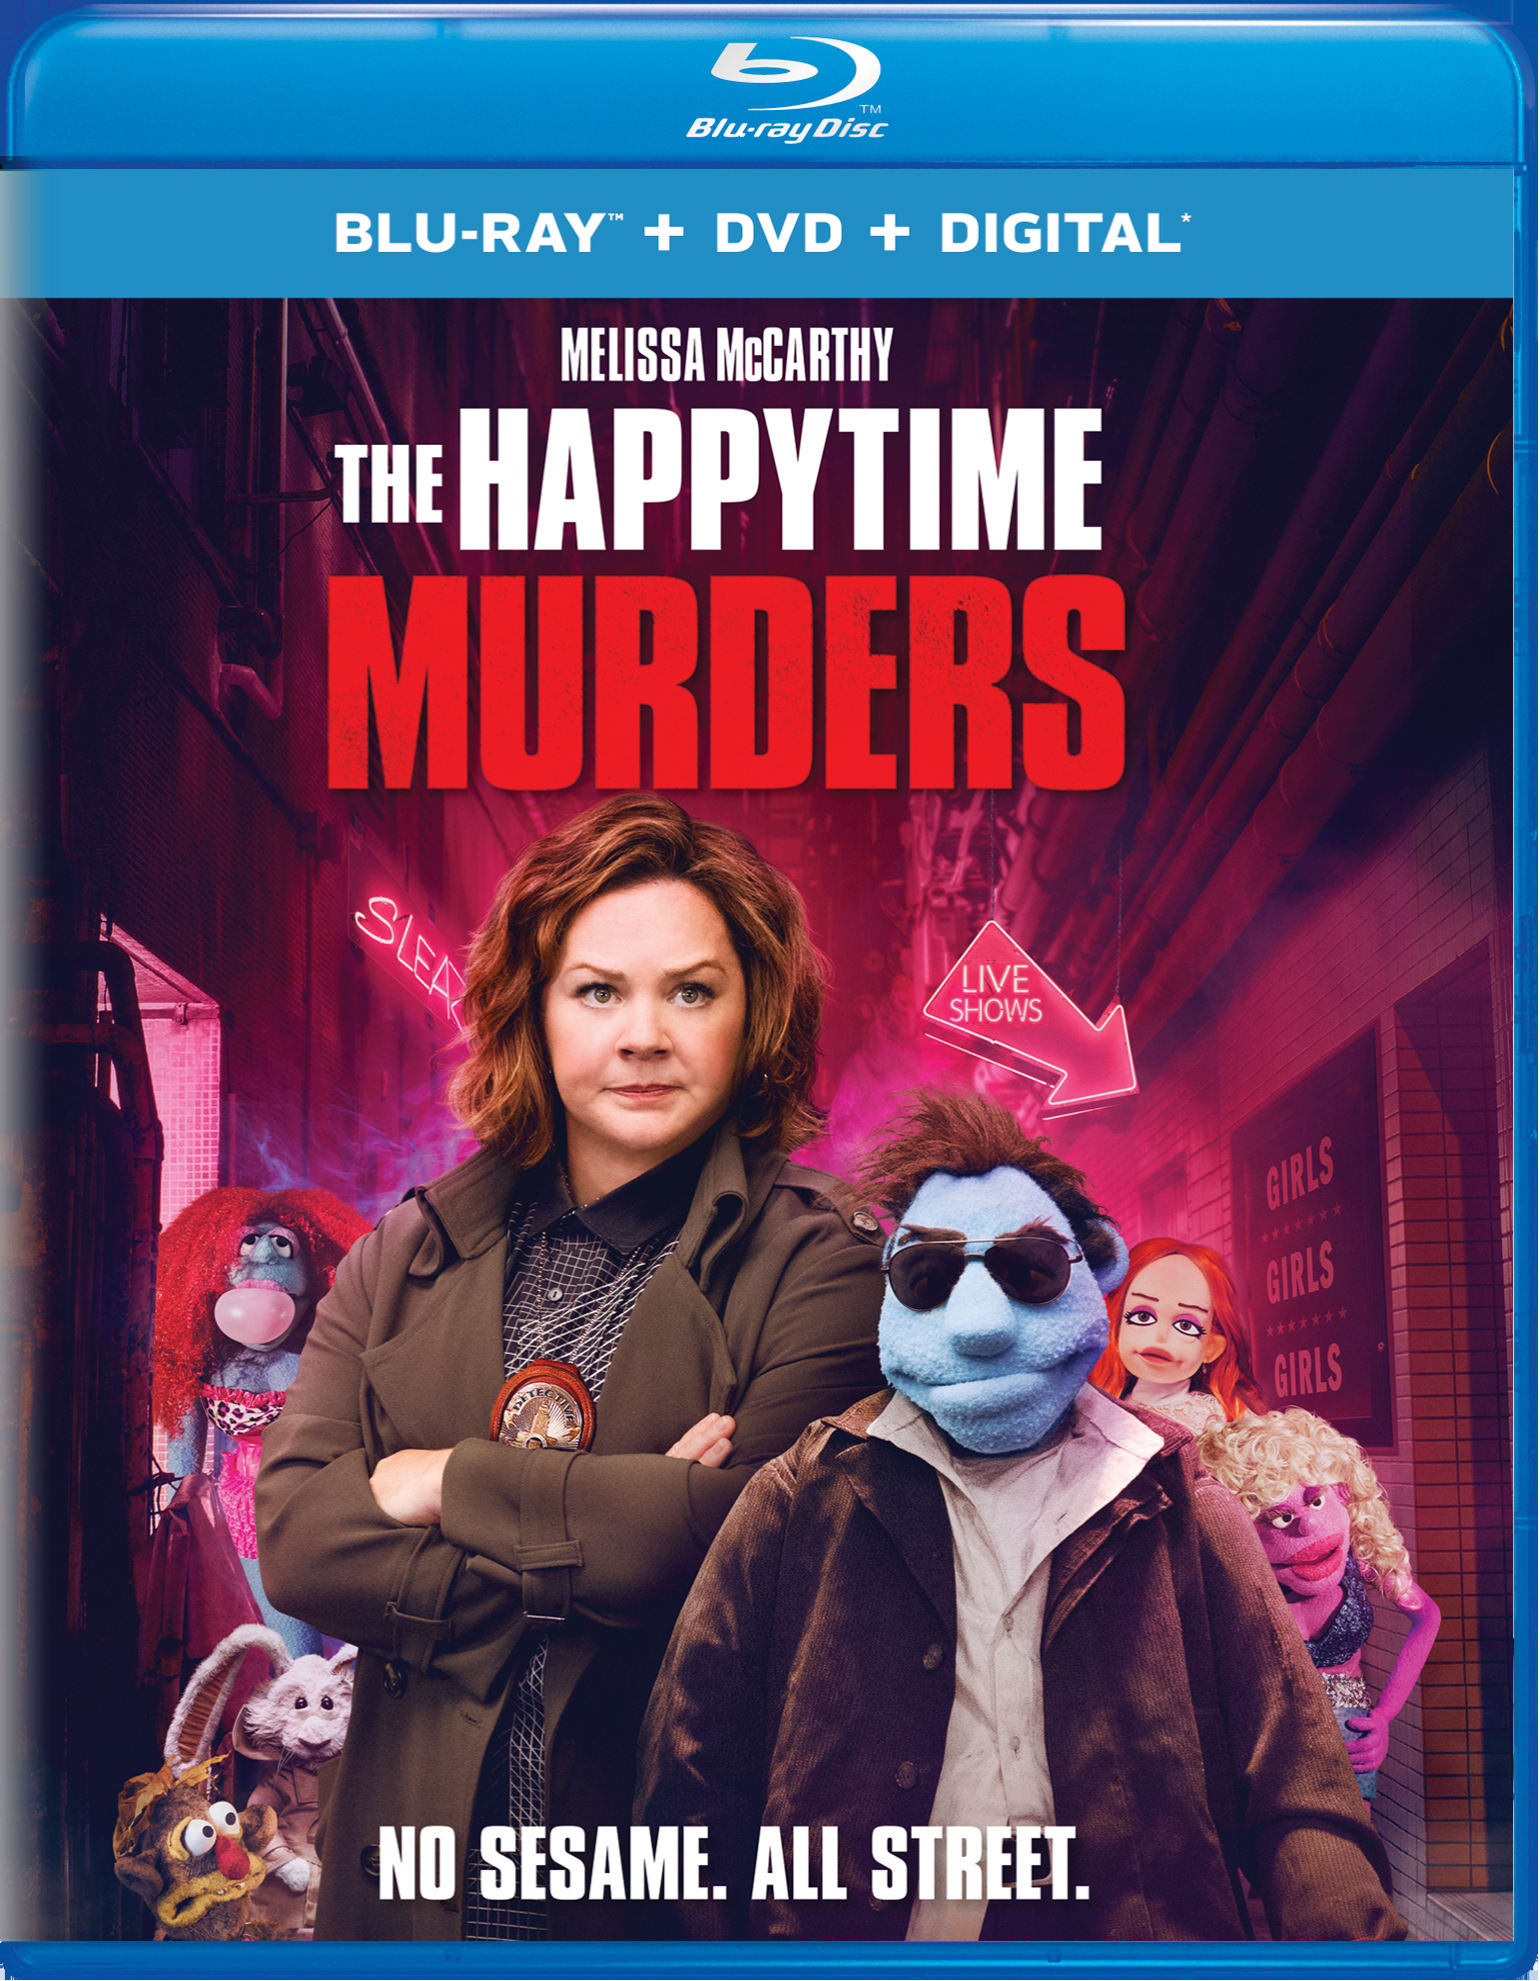 The Happytime Murders (DVD + Digital) [Blu-ray]